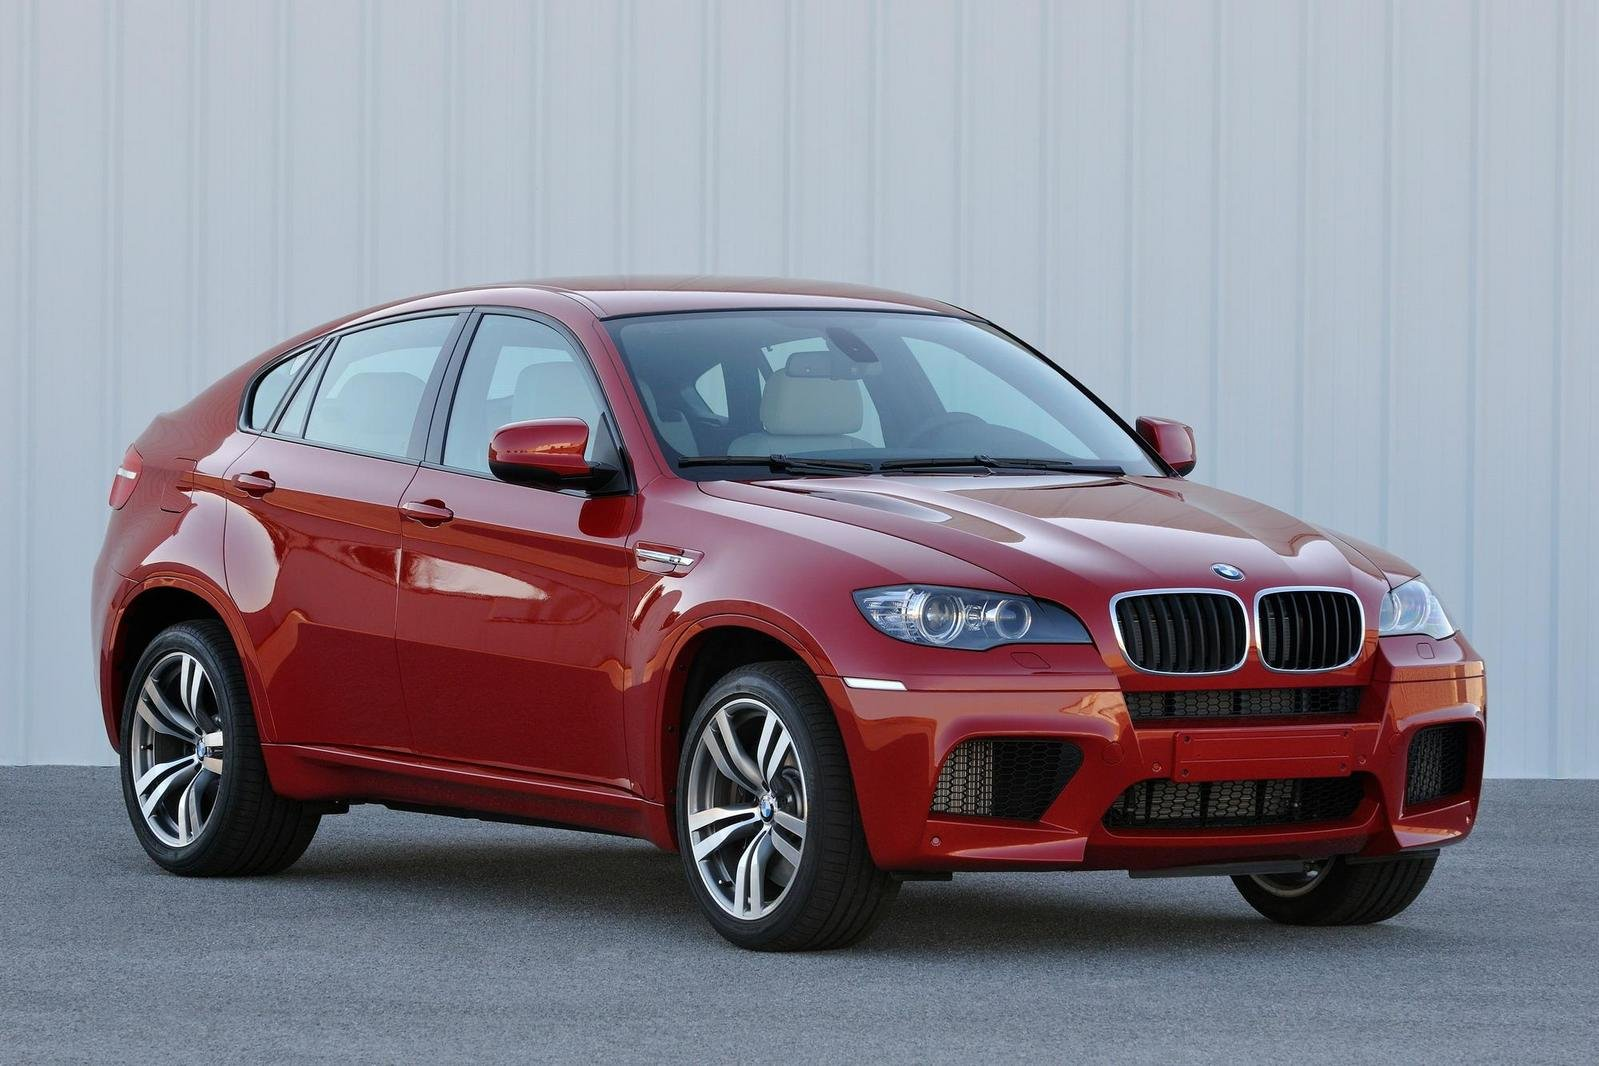 2010 Bmw X6 M Review Top Speed